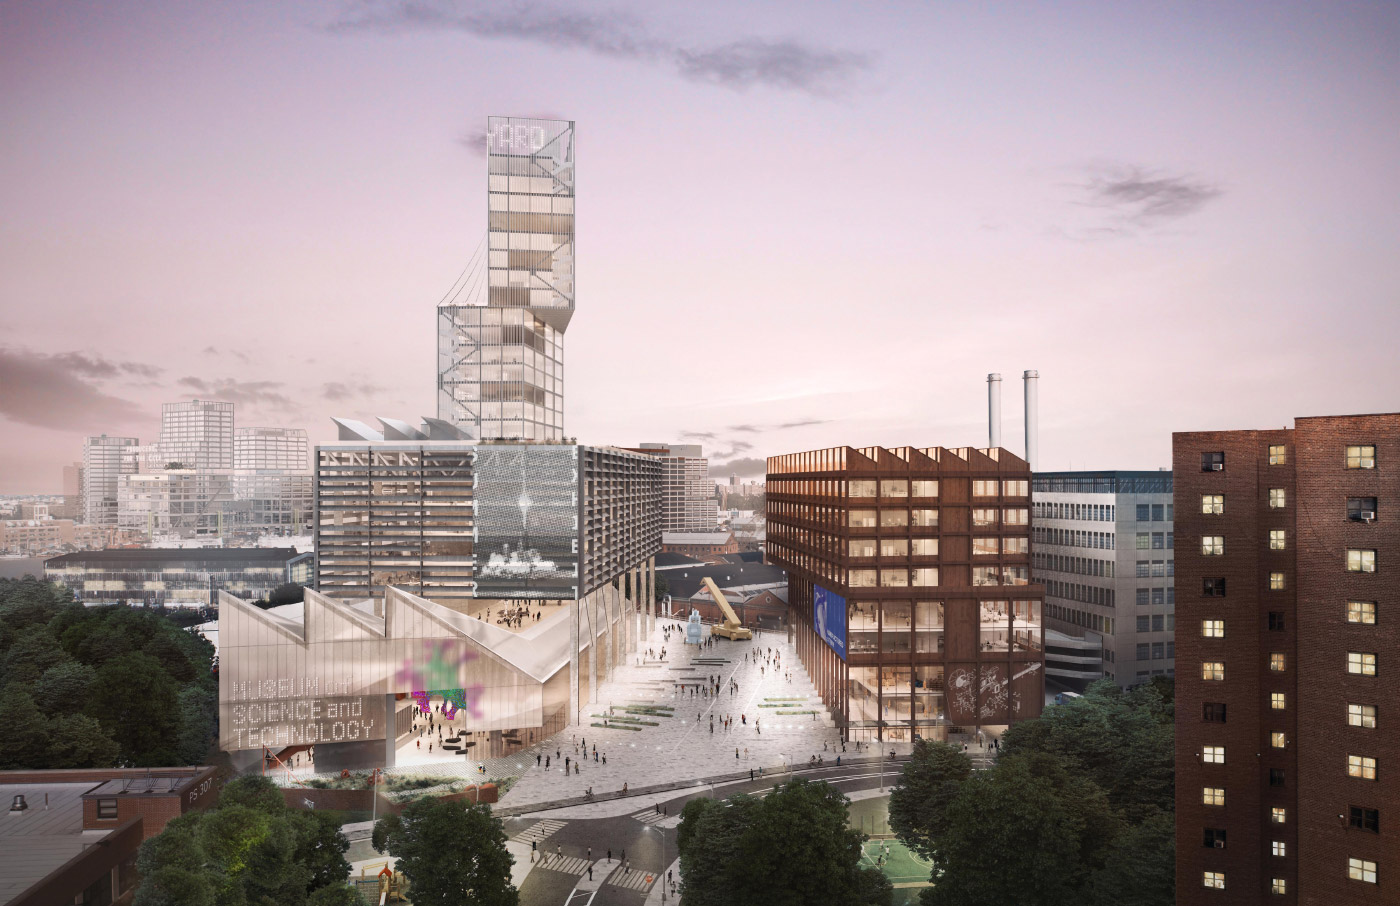 A proposed museum of science and technology at the Navy Street lot in the Brooklyn Navy Yard